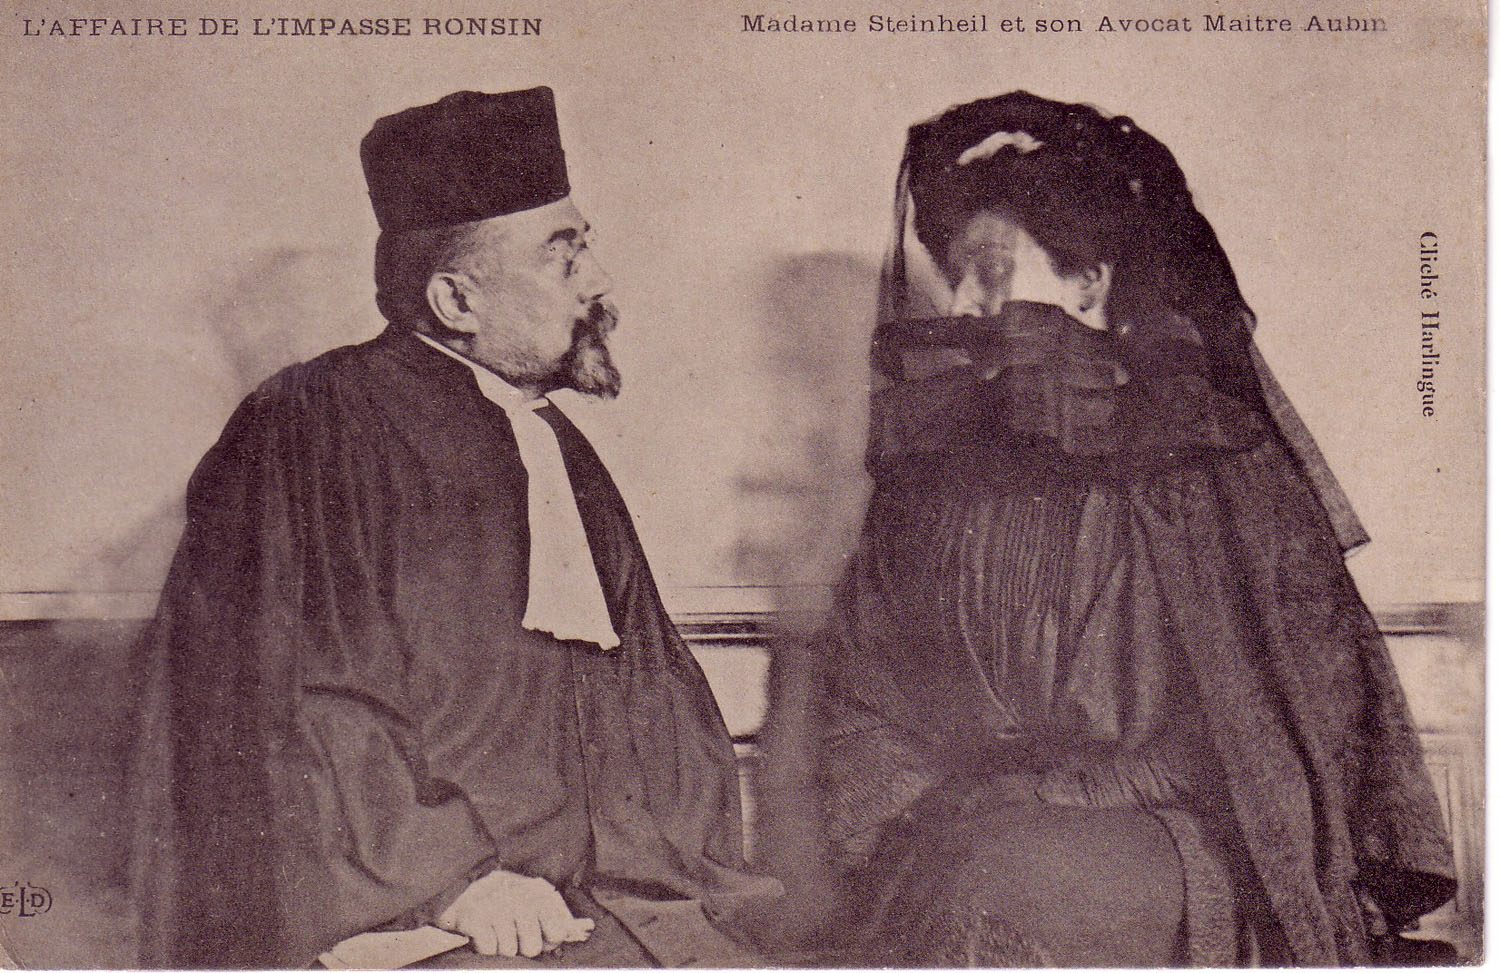 Madame Steinheil and her lawyer Maitre Aubin